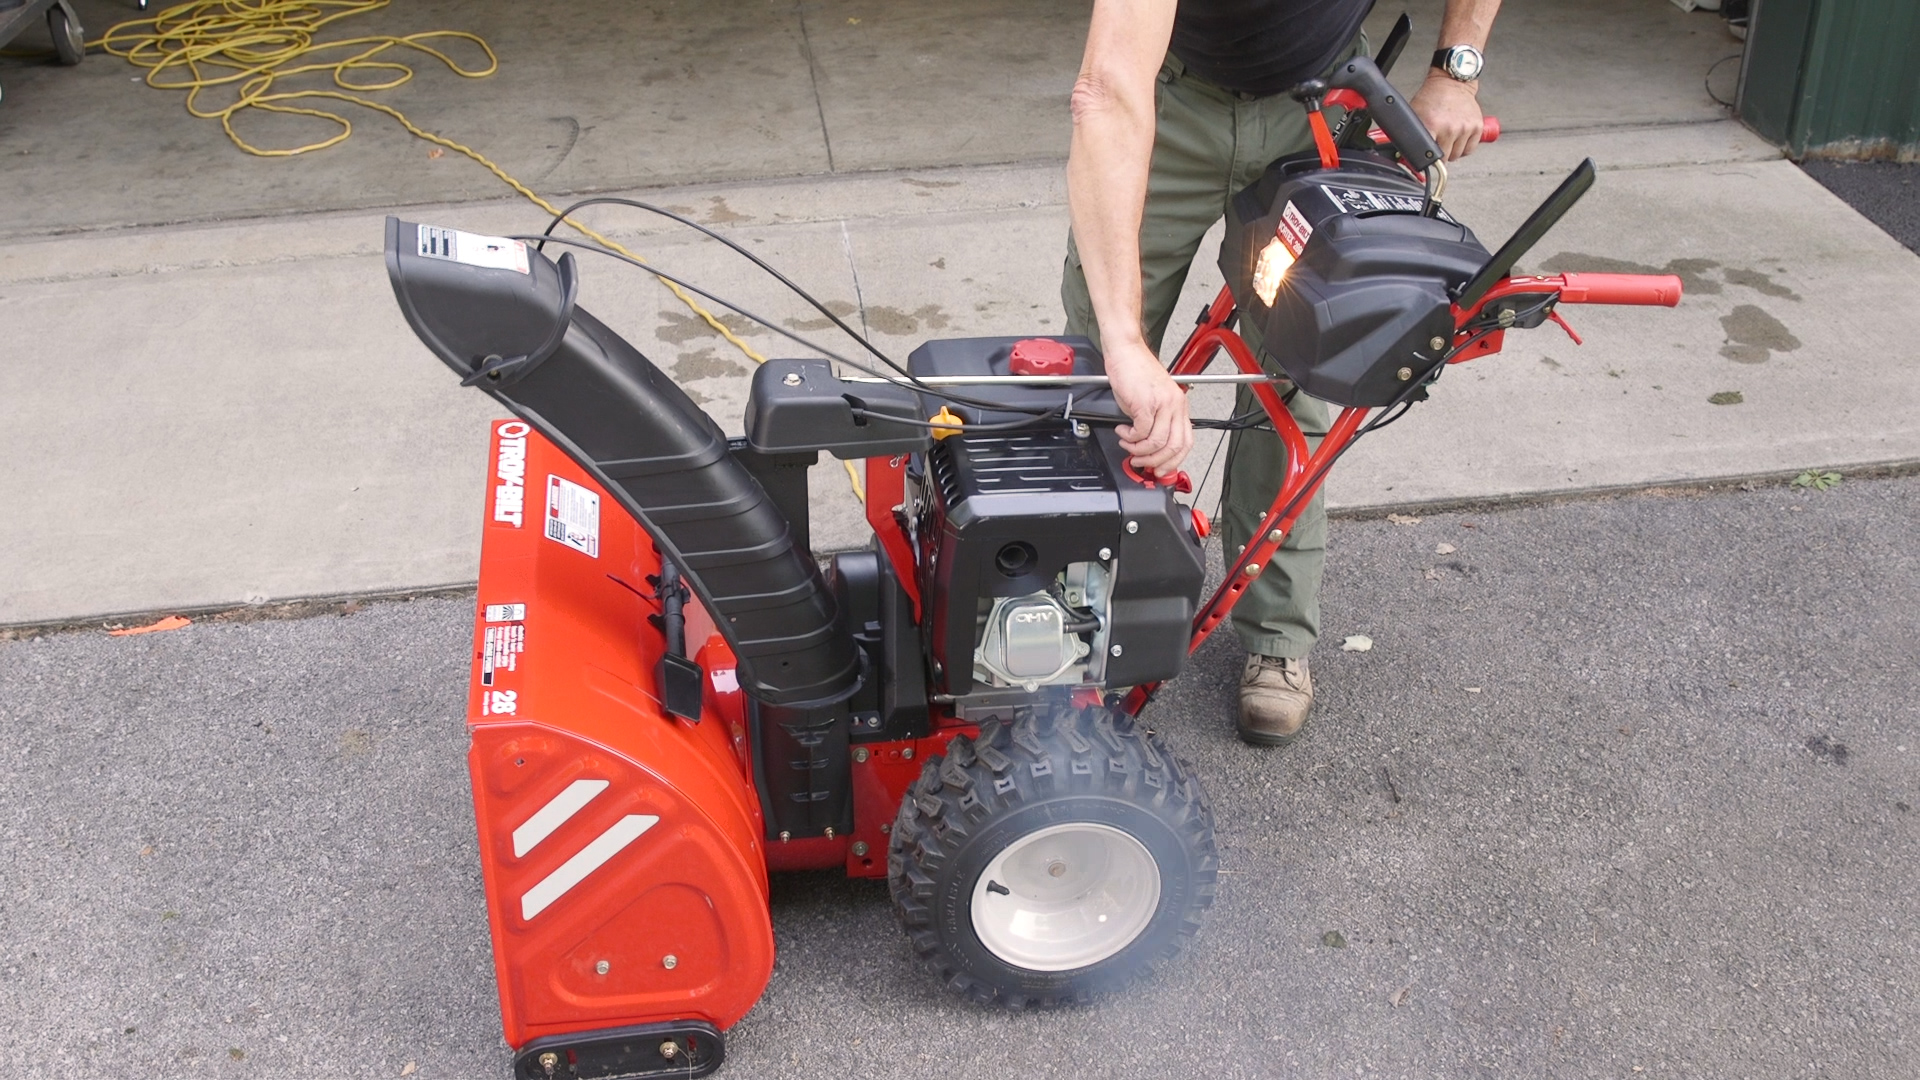 1078702682_5180451413001_1610DIY Snowblower prep still 2016 10 21 16 39?pubId=1078702682 best snow blower reviews consumer reports  at mifinder.co